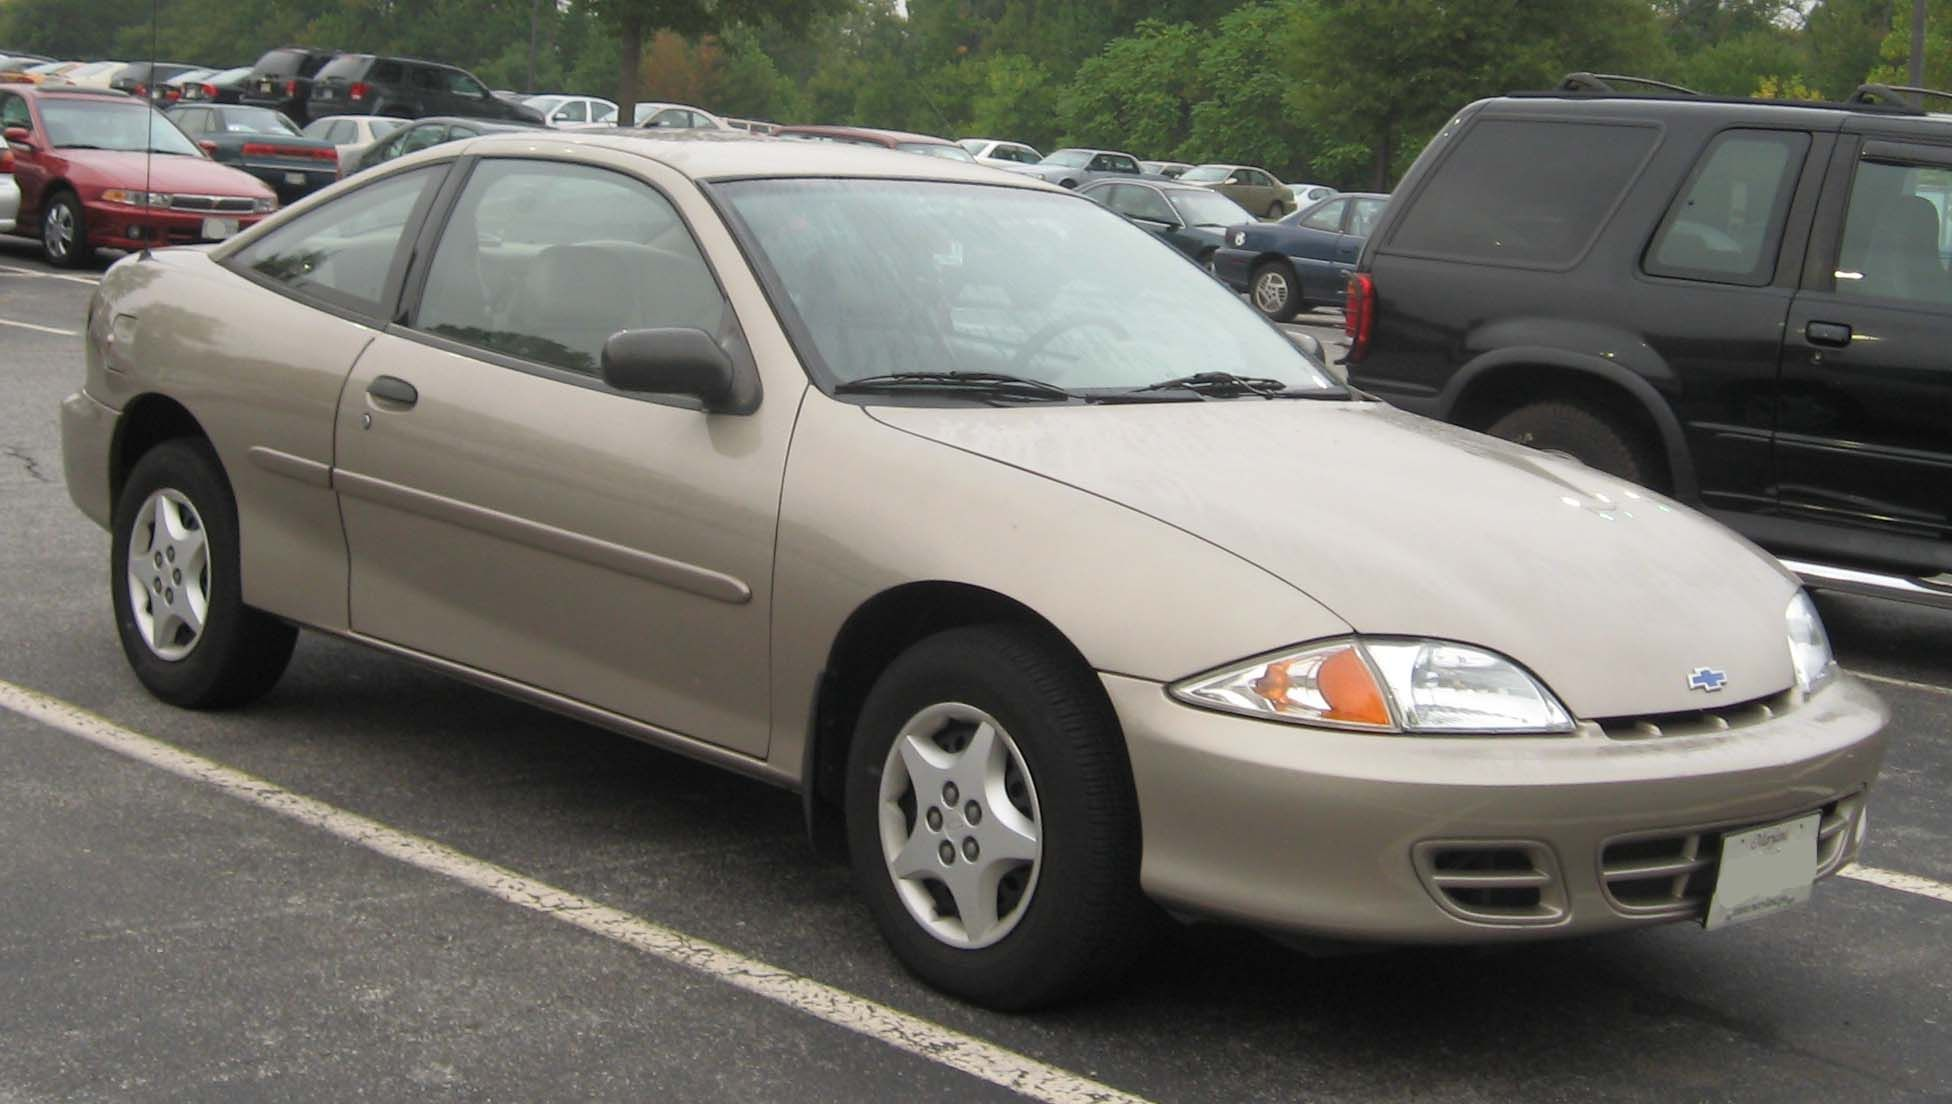 small resolution of 2000 chevy cavalier first vehicle i owned i actually had to pay for mine looked like this but had an uber sporty tail fin on the back